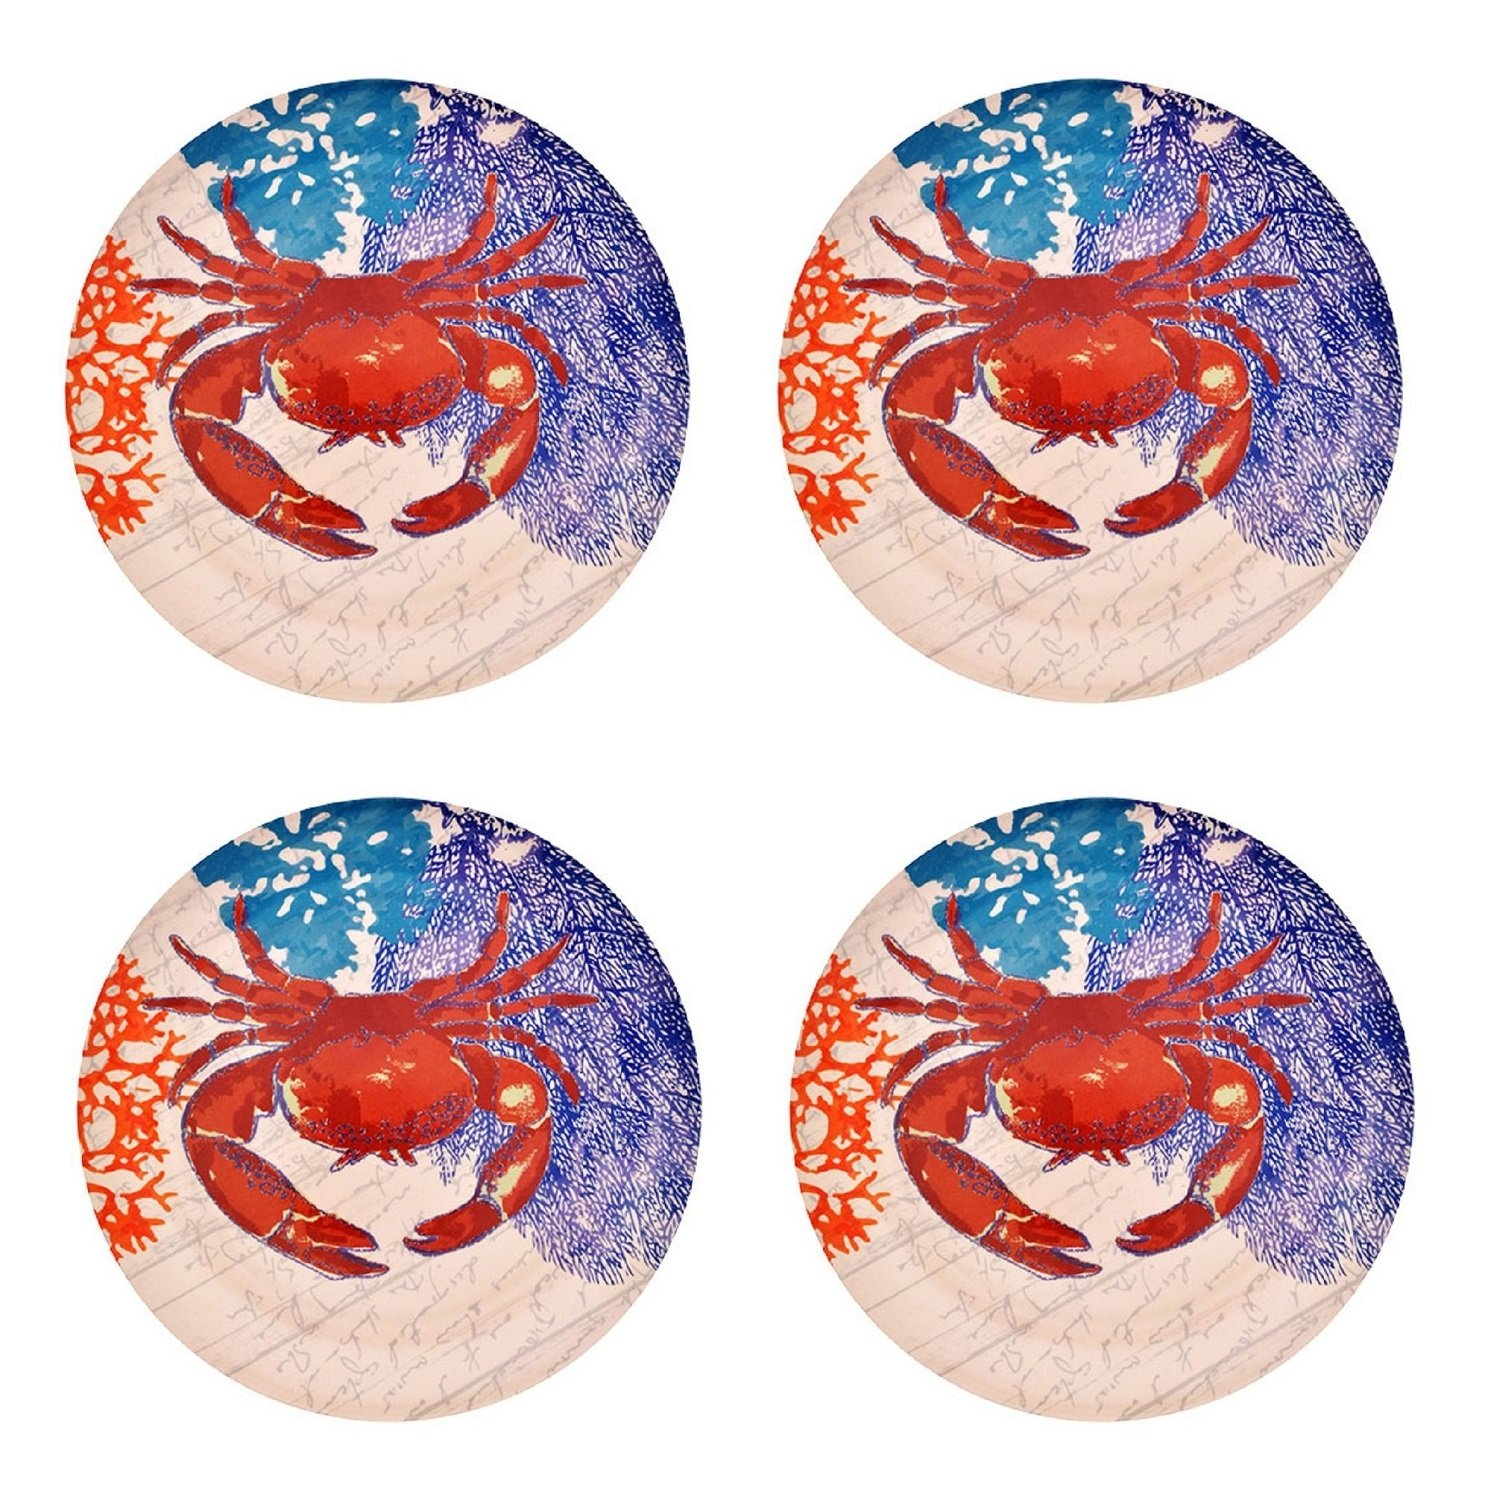 Set of 4 Classic Red Crab Print Design Melamine Plastic Plates (Kitchen BBQ Party - Coral Reef Sea Life Coastal Ocean)